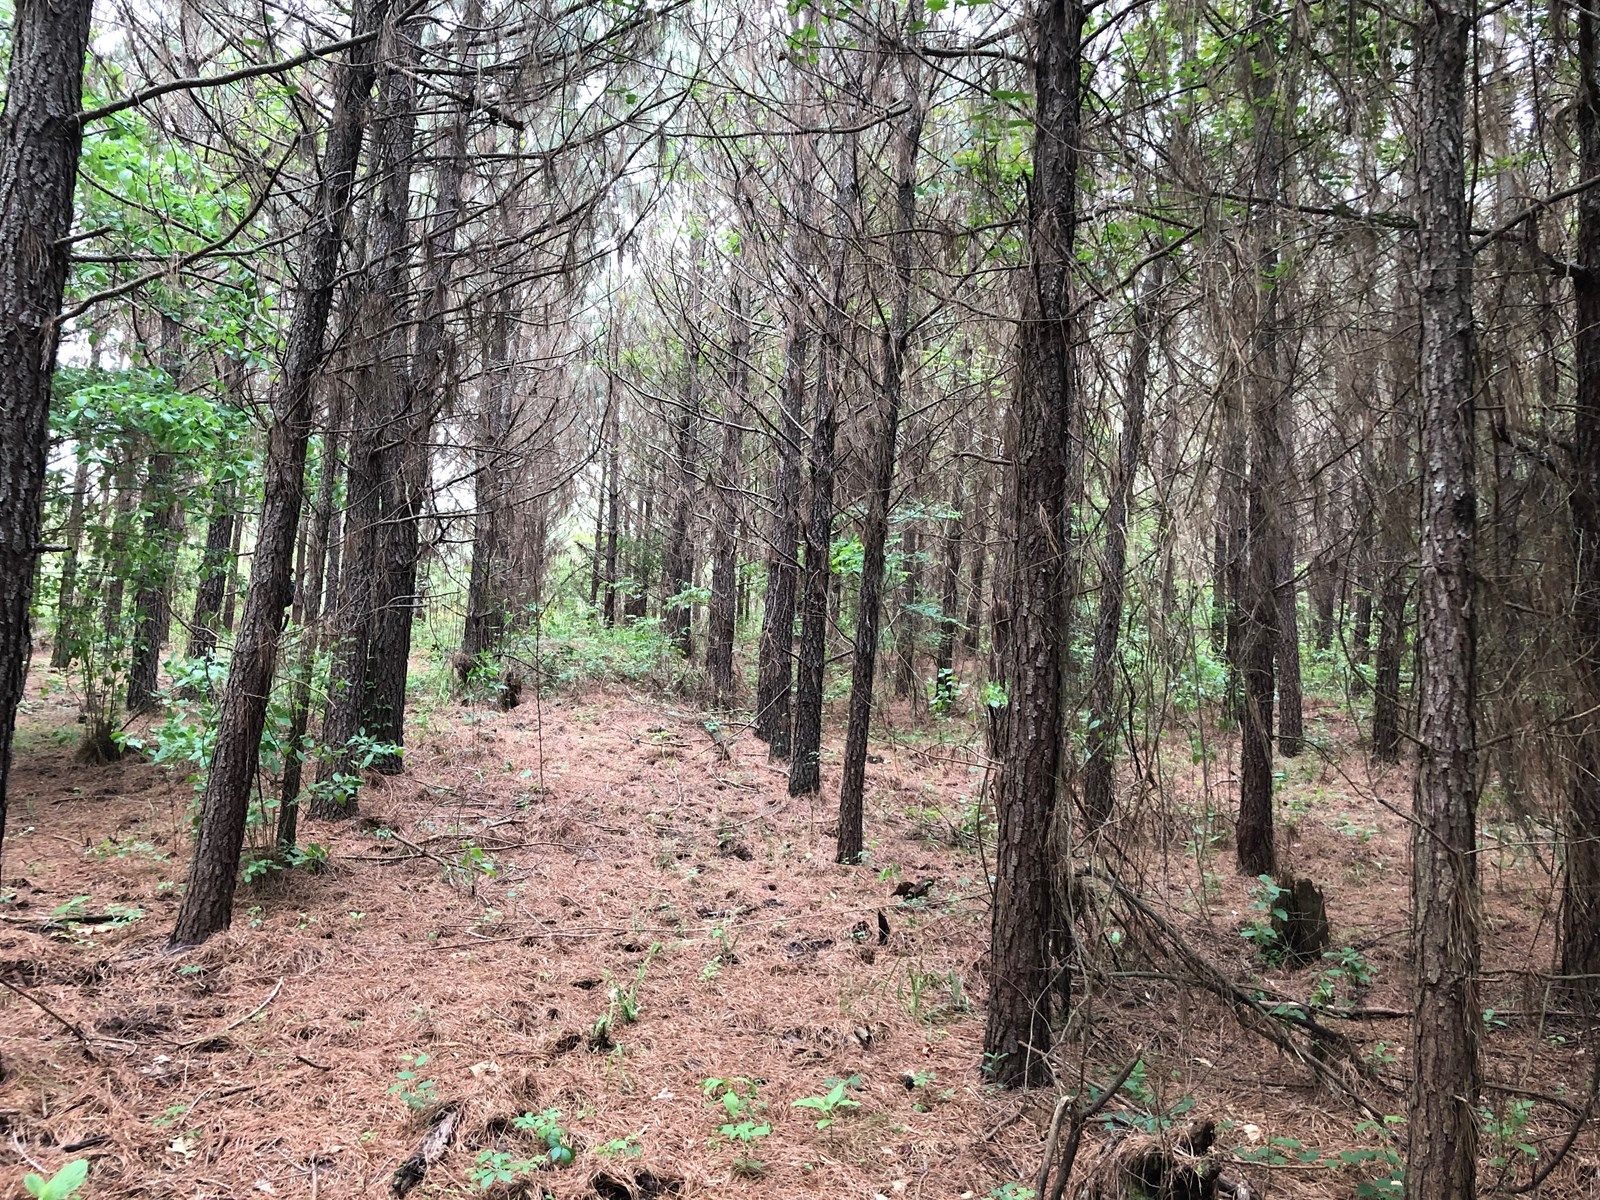 Planted Pine for Sale /W Hardwood Creek Land near Emmet, AR